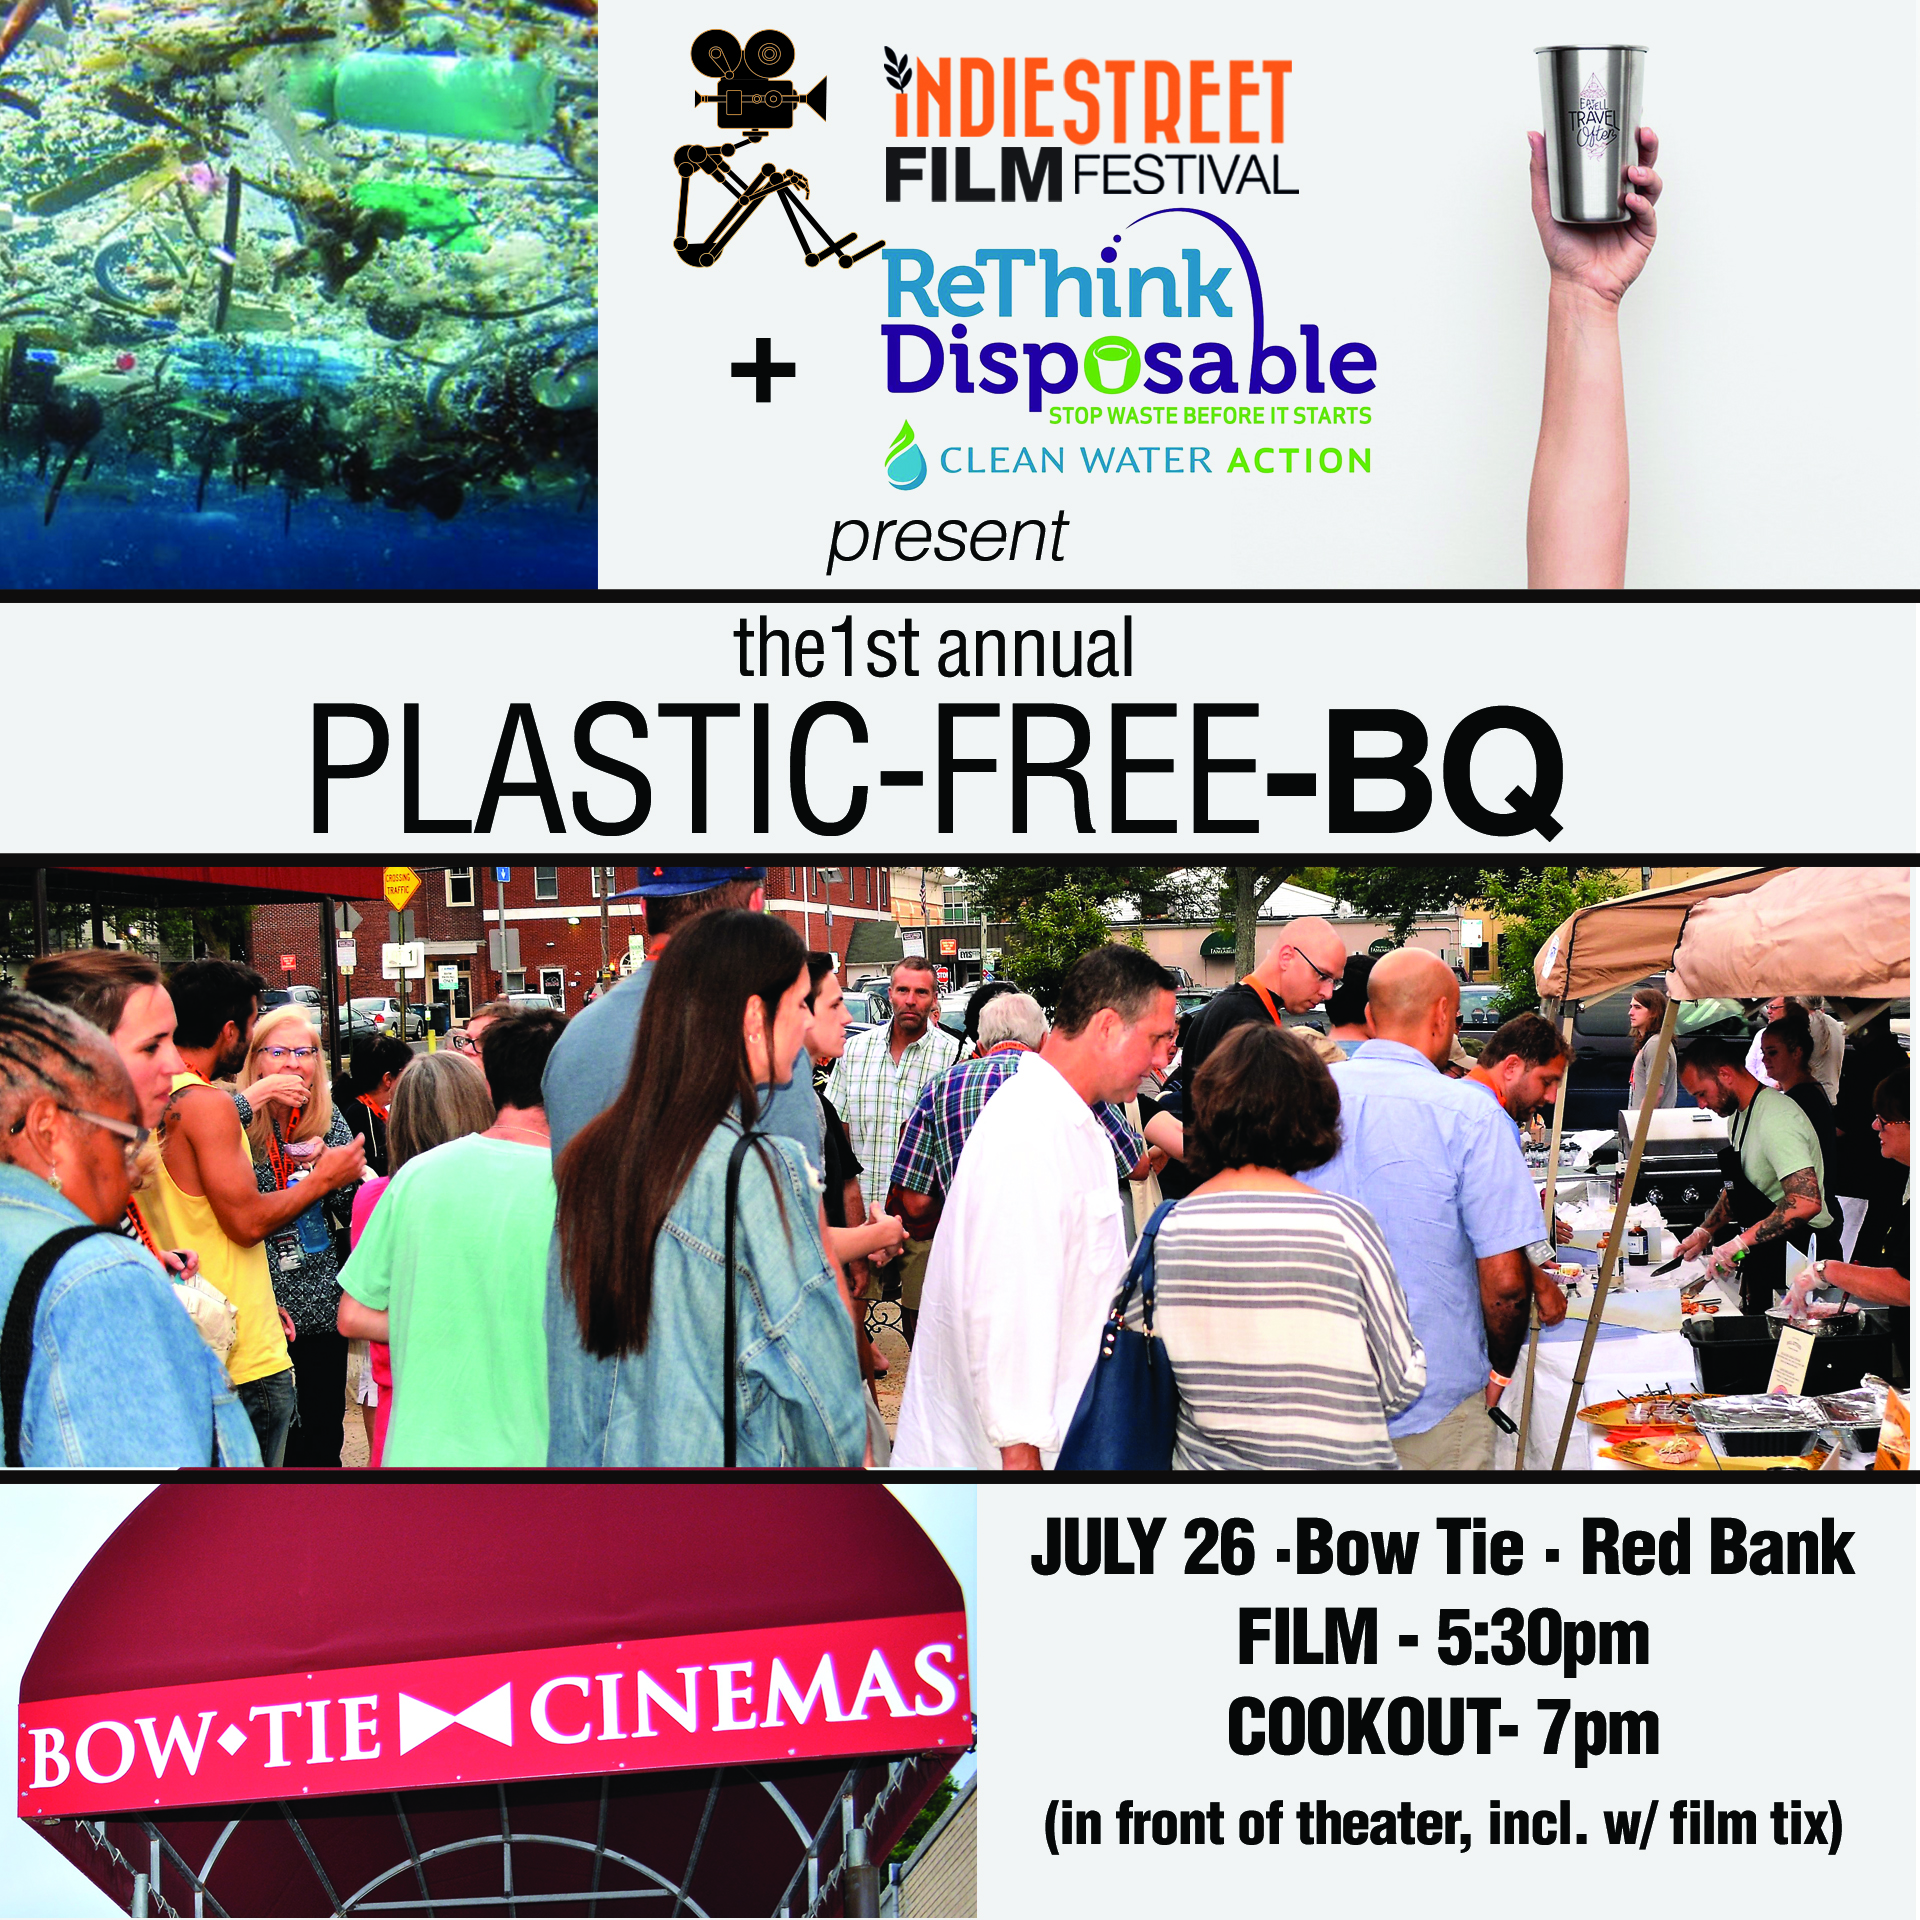 Plastic-Free-BQ_Indie Street Film Fest_ReThink Disposable_New Jersey